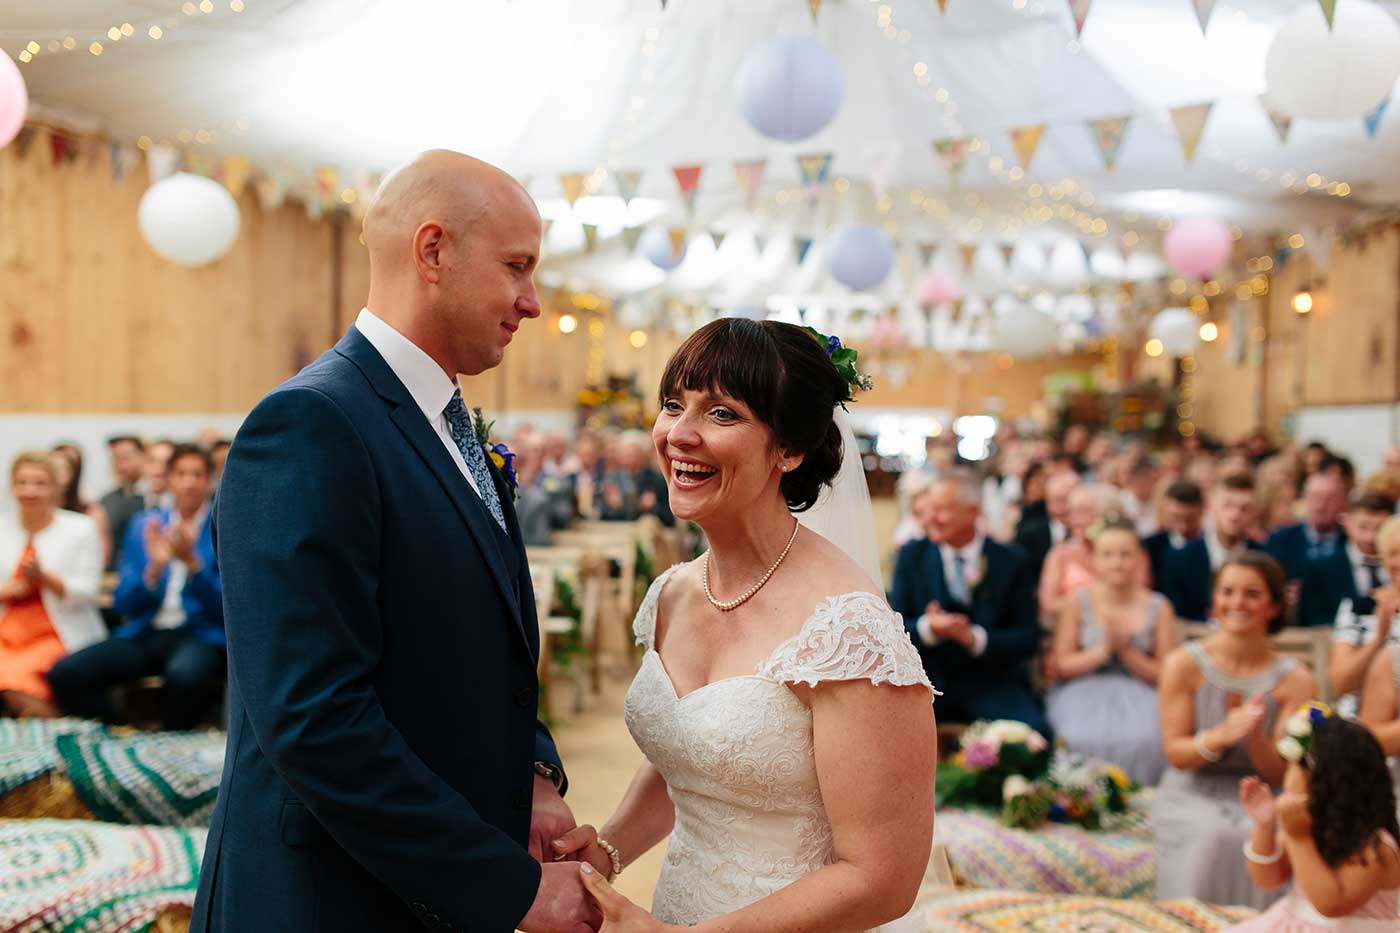 Marriage ceremony at the wellbeing farm wedding venue